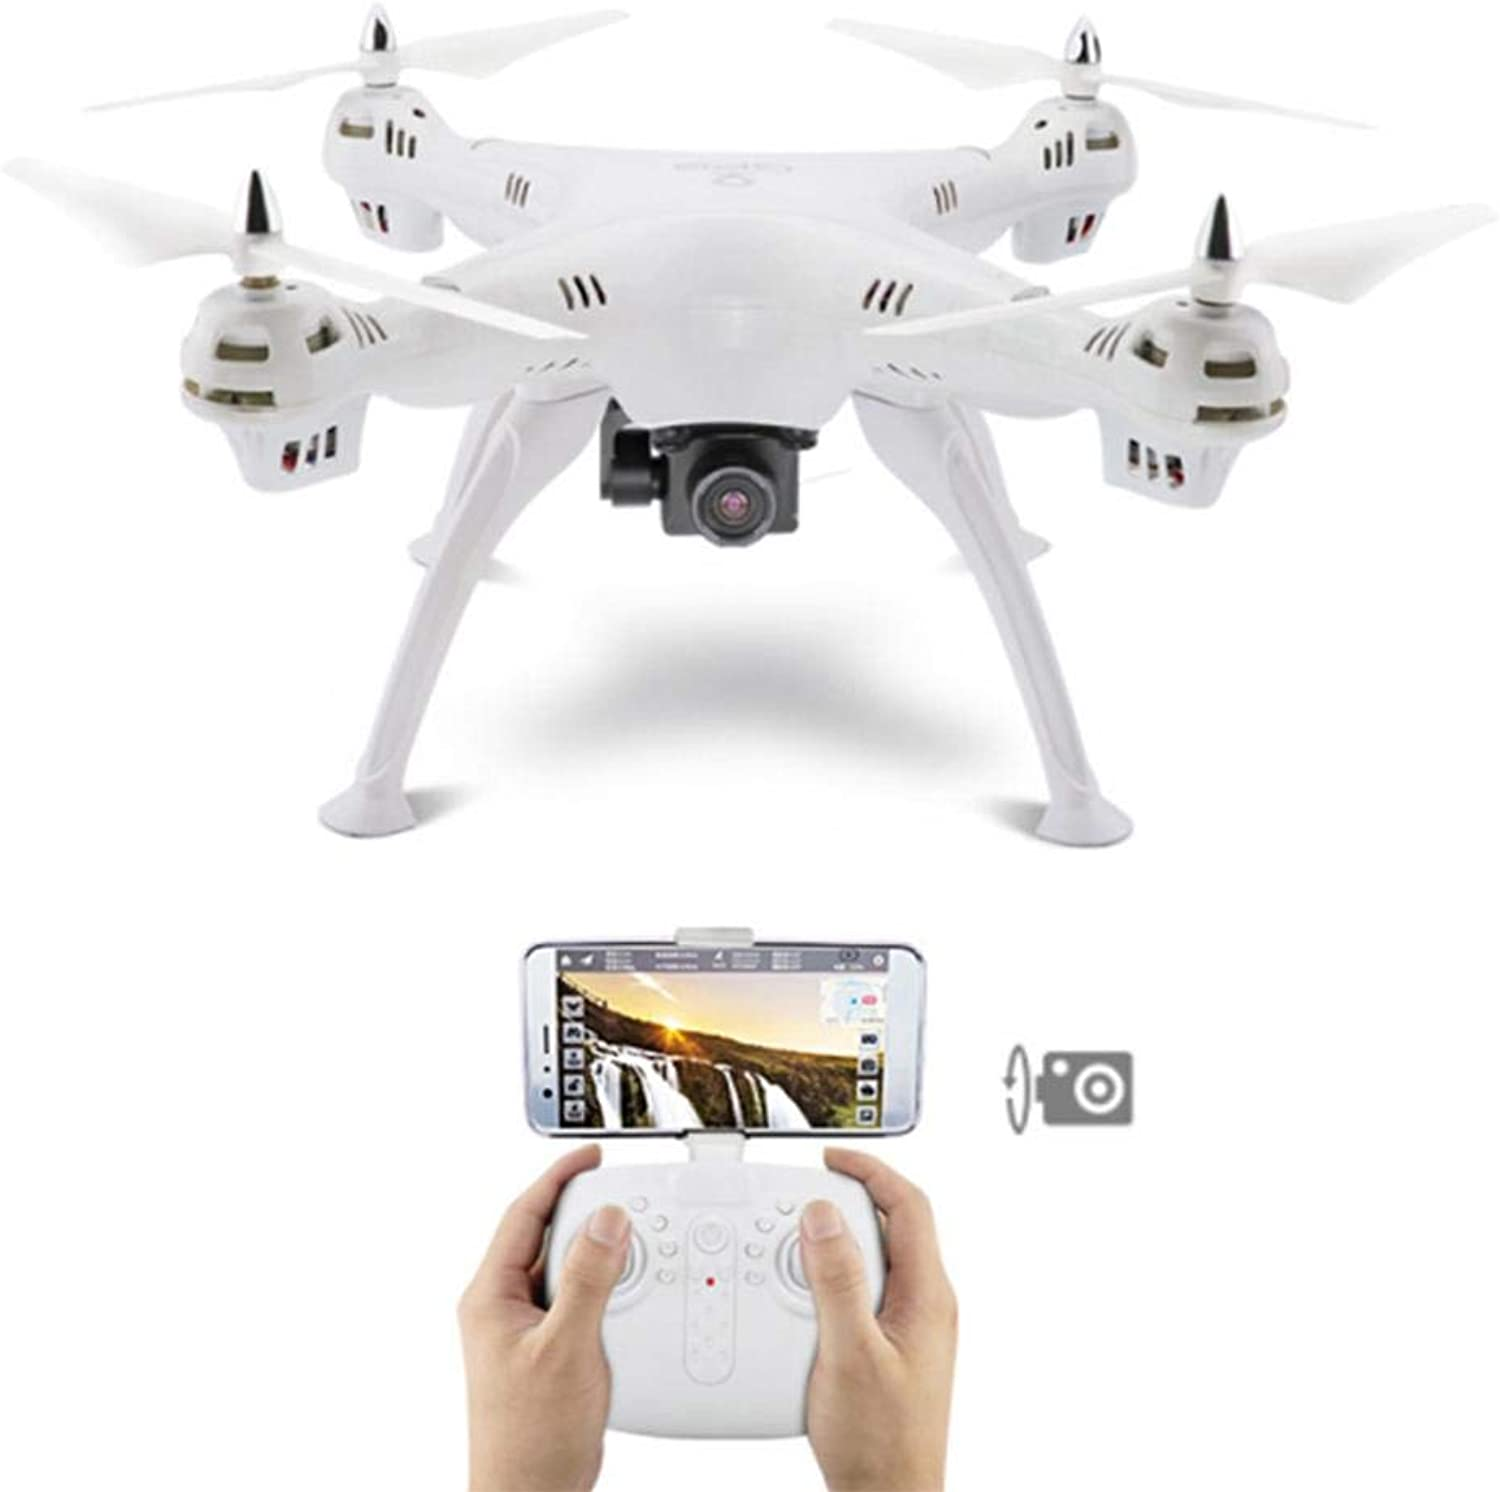 Eillybird X8 GPS Satellite Positioning Drone,High Definition 4K Aerial Photography Remote Control UAV 5GWiFi 5G Network Professional Camera,Four-axis Aircraft Intelligent Return